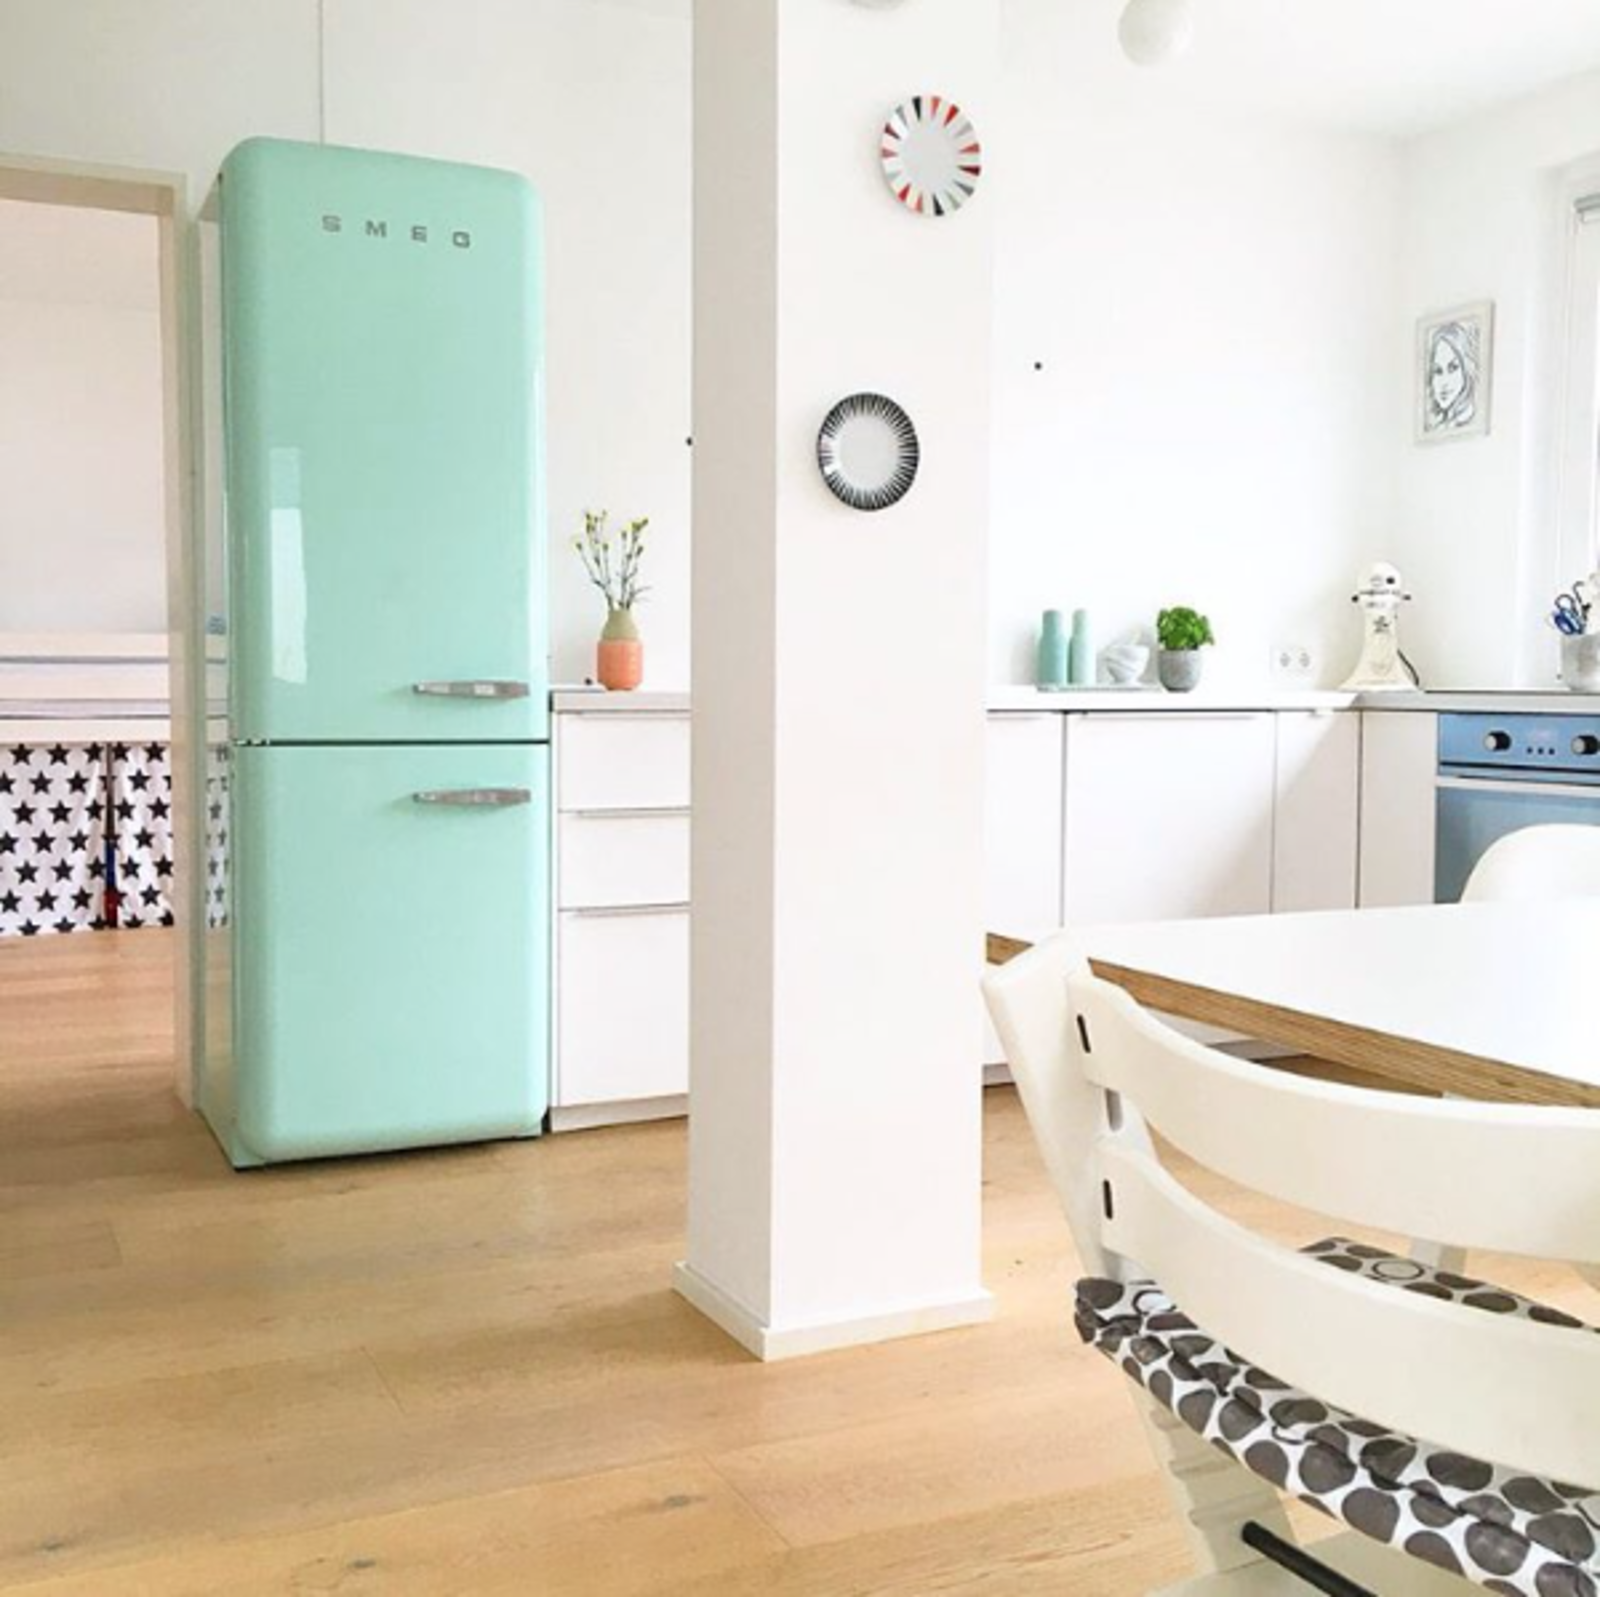 @solebich shared this photo of a bright kitchen-dining area with a turquoise Smeg refrigerator.  Photo 9 of 9 in The Eco-Friendly Guide to Upgrading an Existing Home from Spotted on Instagram: Five Totally Different Styles for Your Kitchen